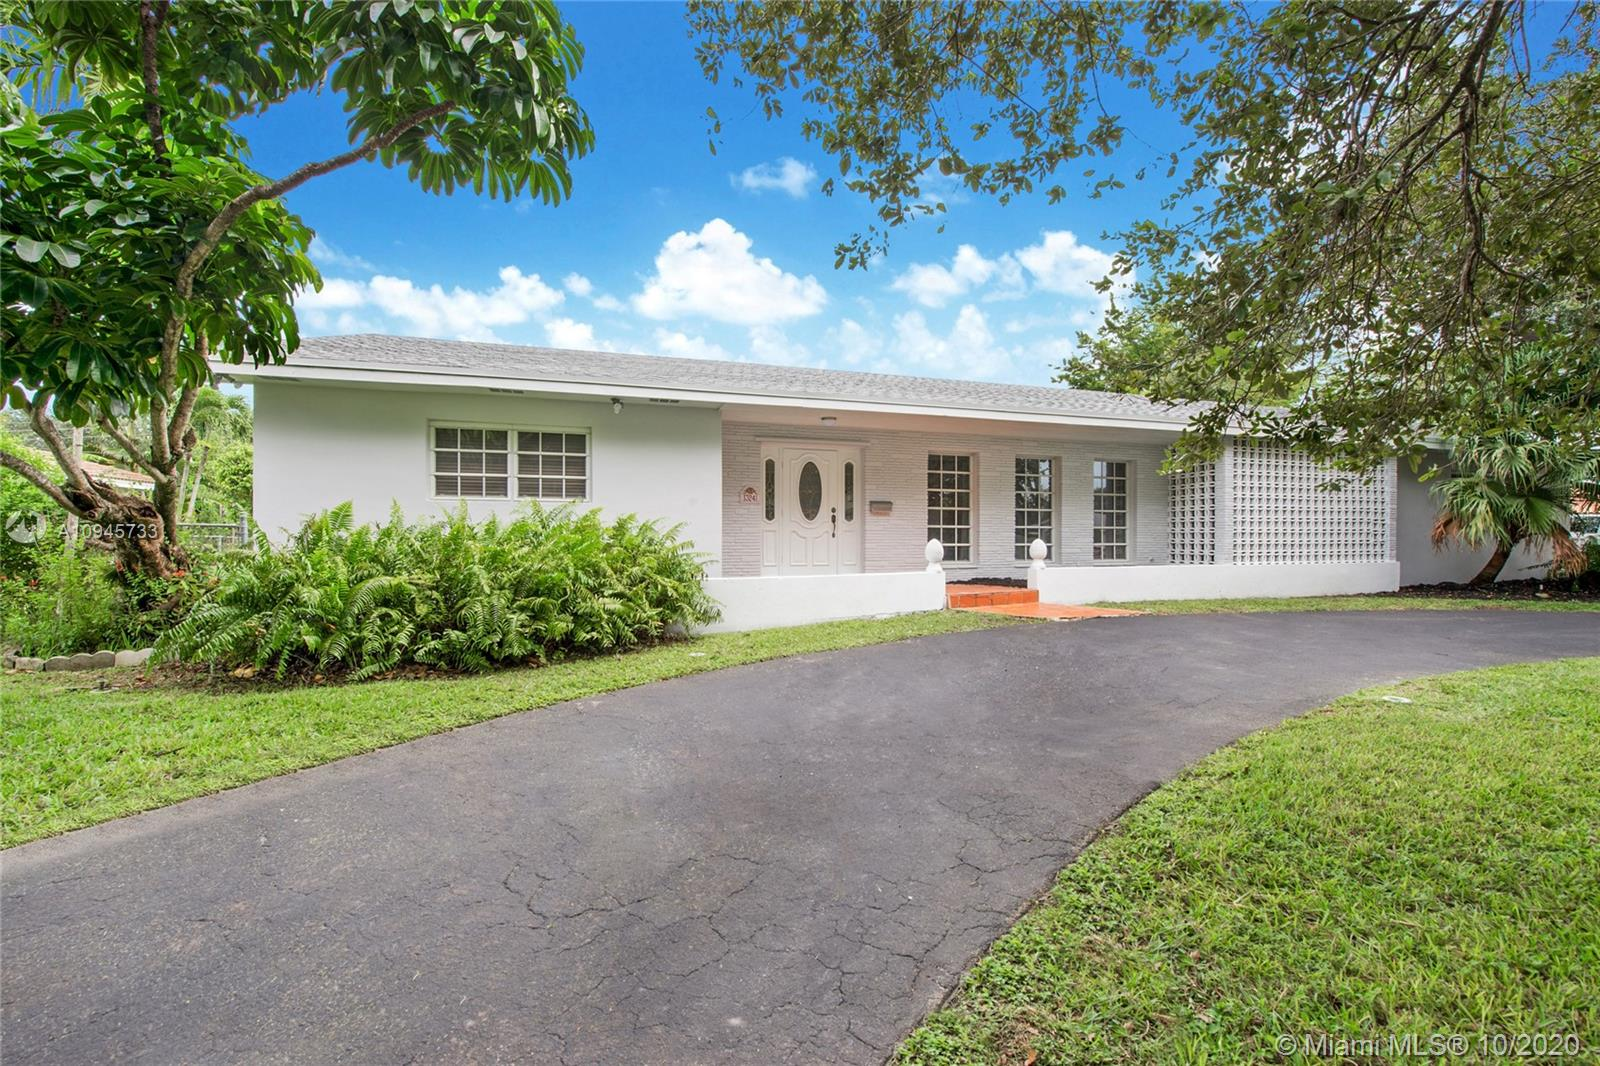 13241 SW 72nd Ave, Pinecrest, Florida 33156, 4 Bedrooms Bedrooms, ,3 BathroomsBathrooms,Residential,For Sale,13241 SW 72nd Ave,A10945733